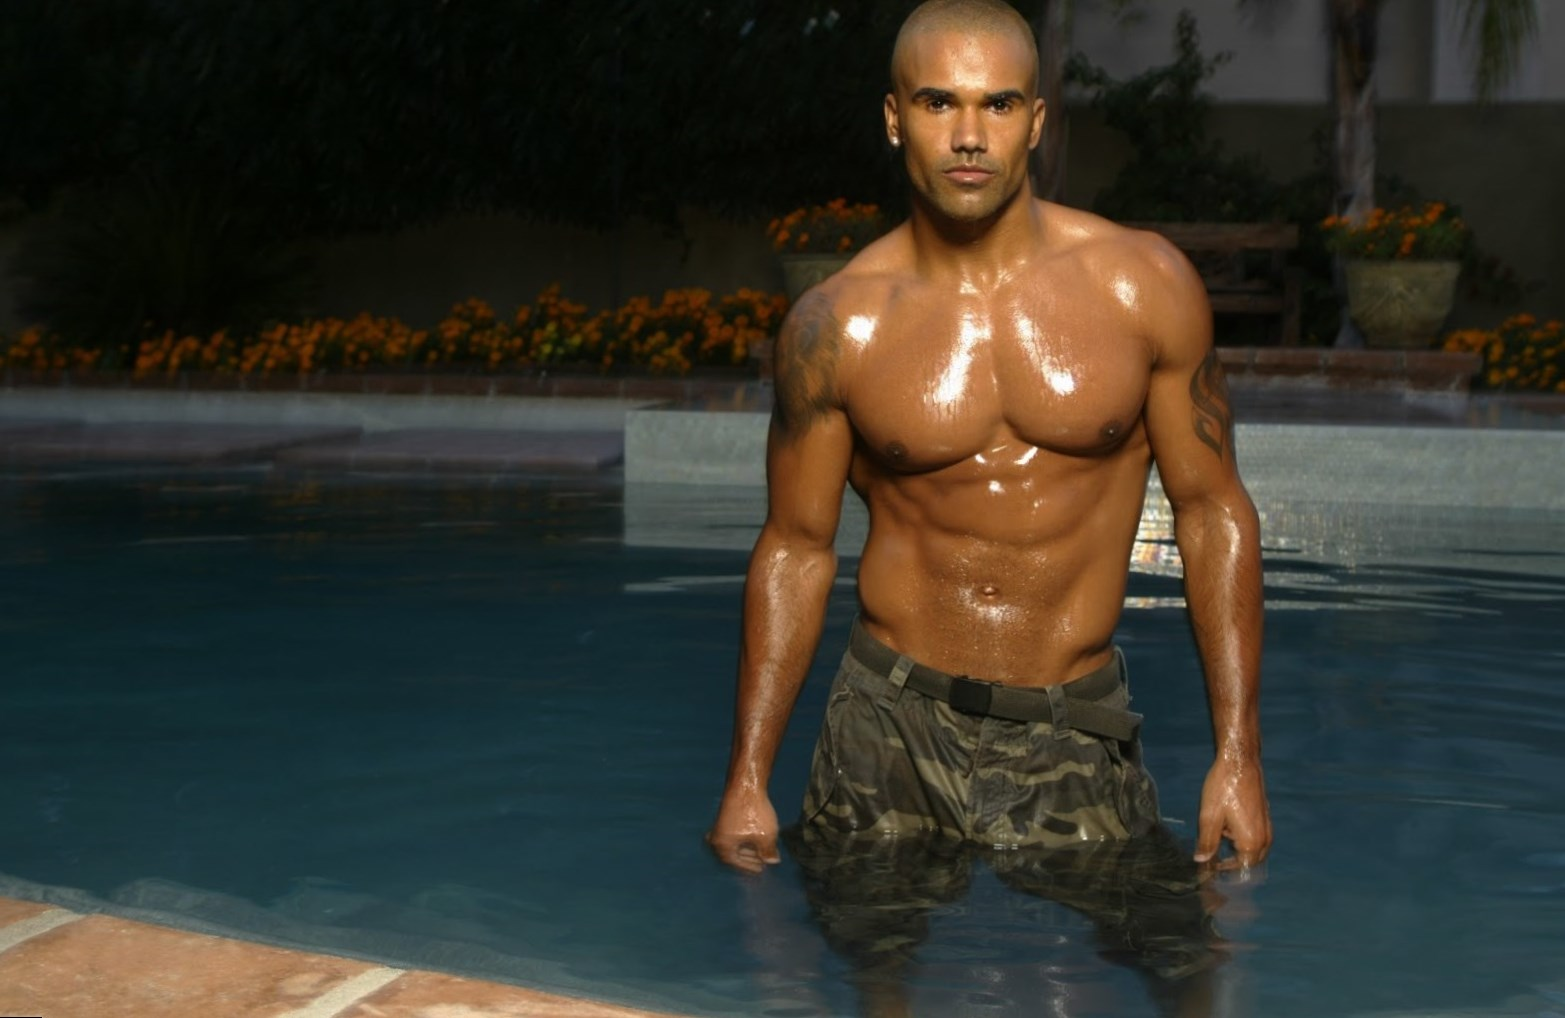 shemar moore plastic surgery photo - 1